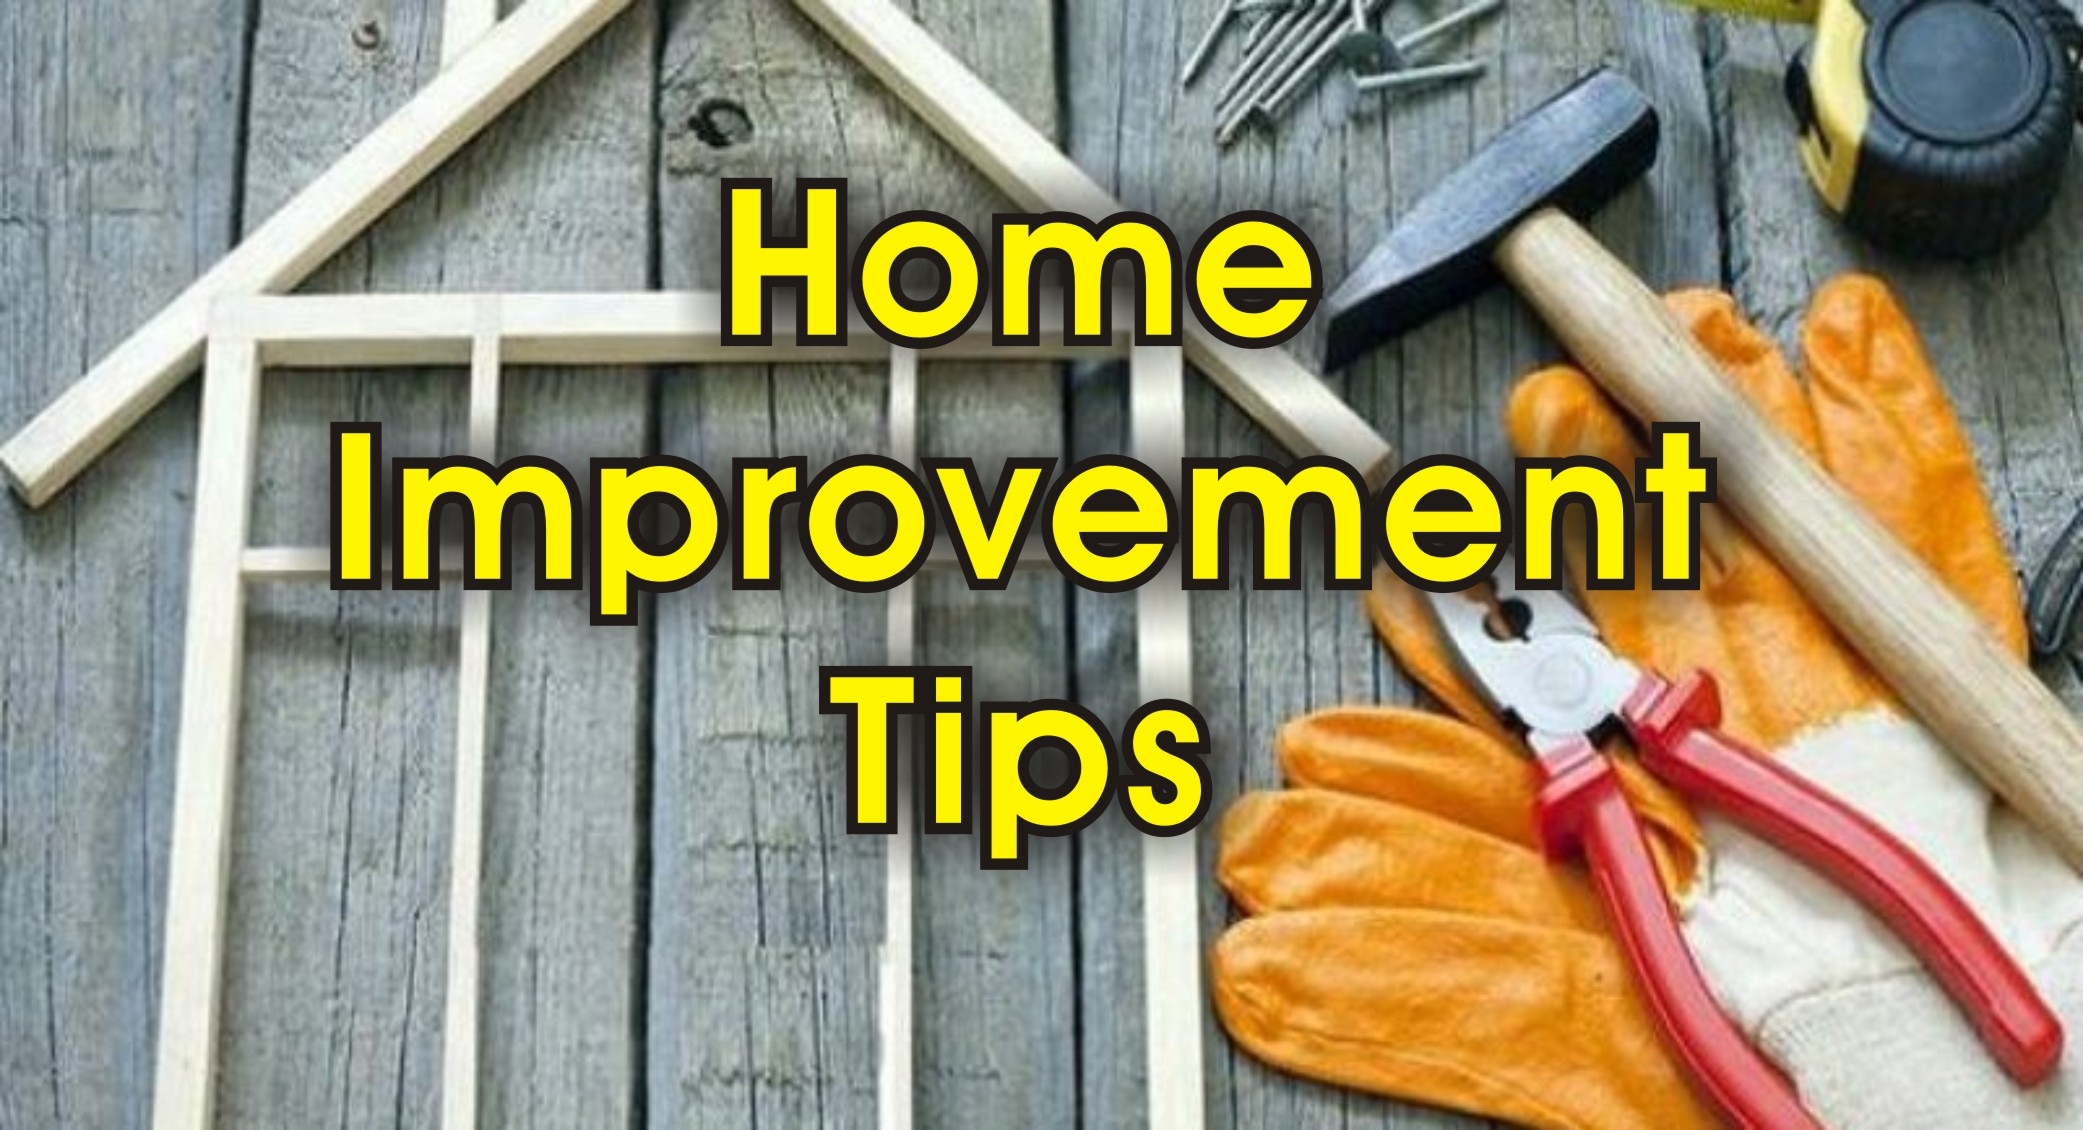 home improvement tips to make your home beautiful